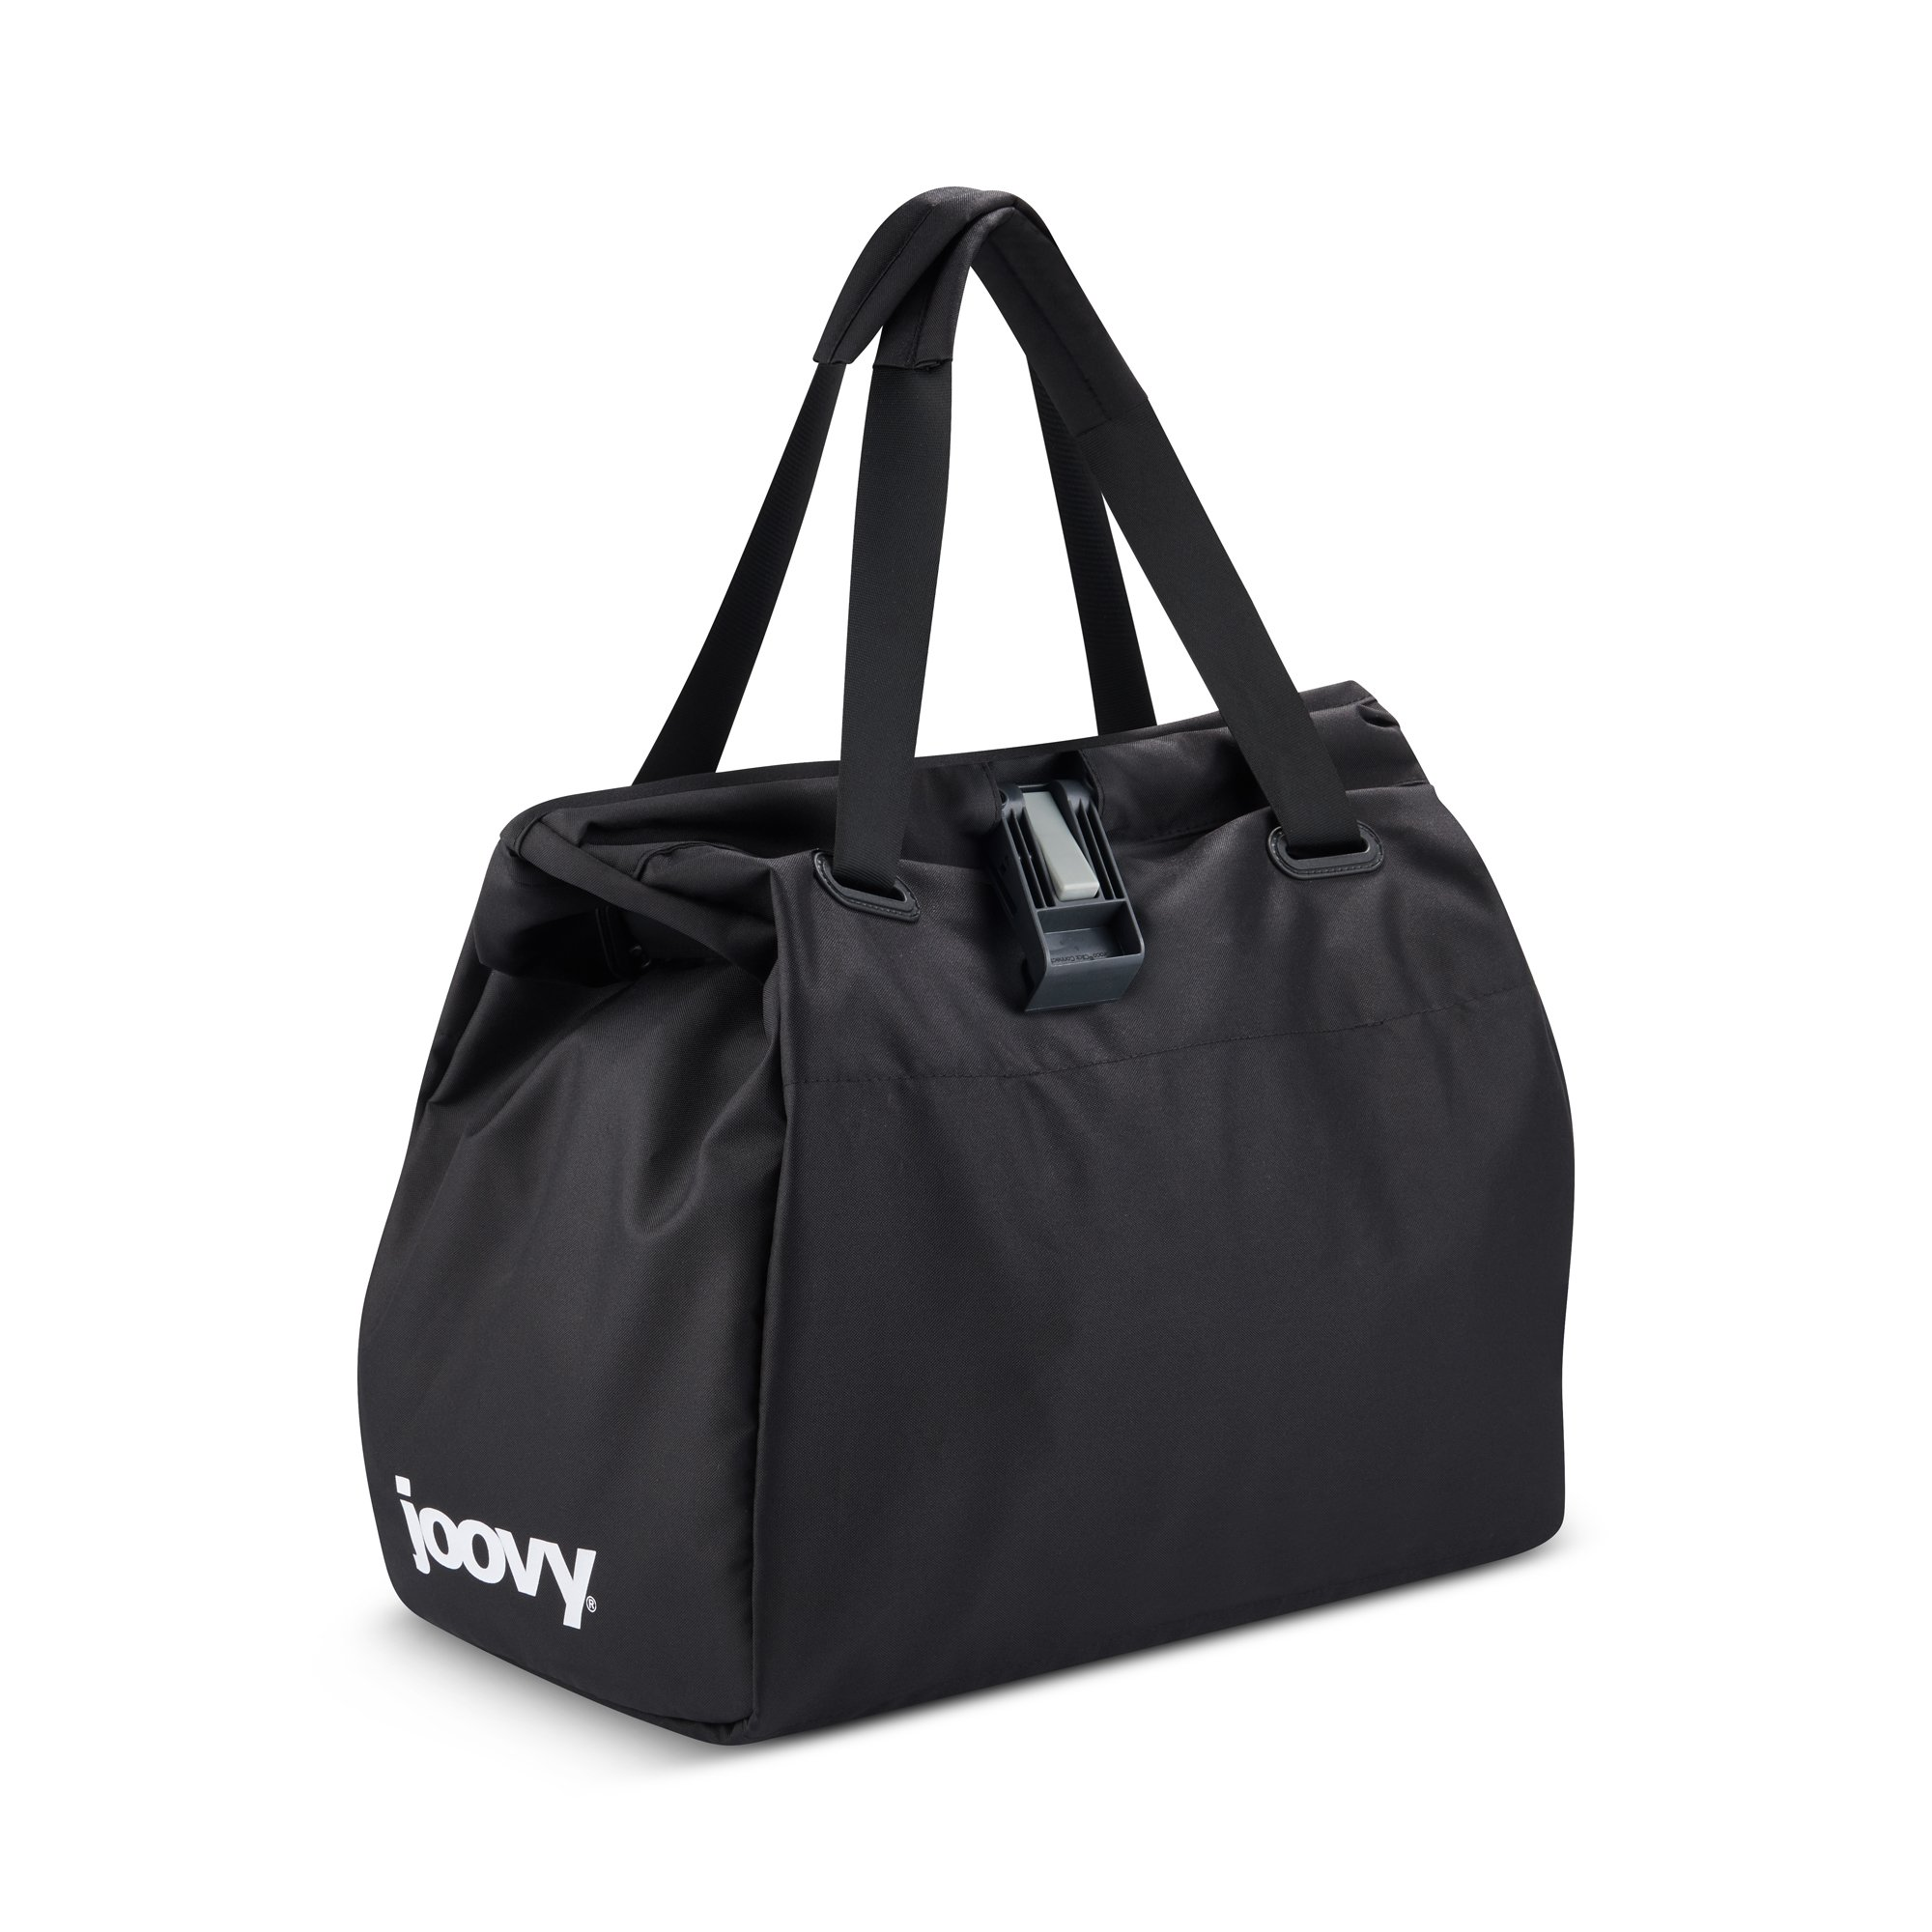 JOOVY Caboose S Baby Stroller Travel Tote Bags by Joovy